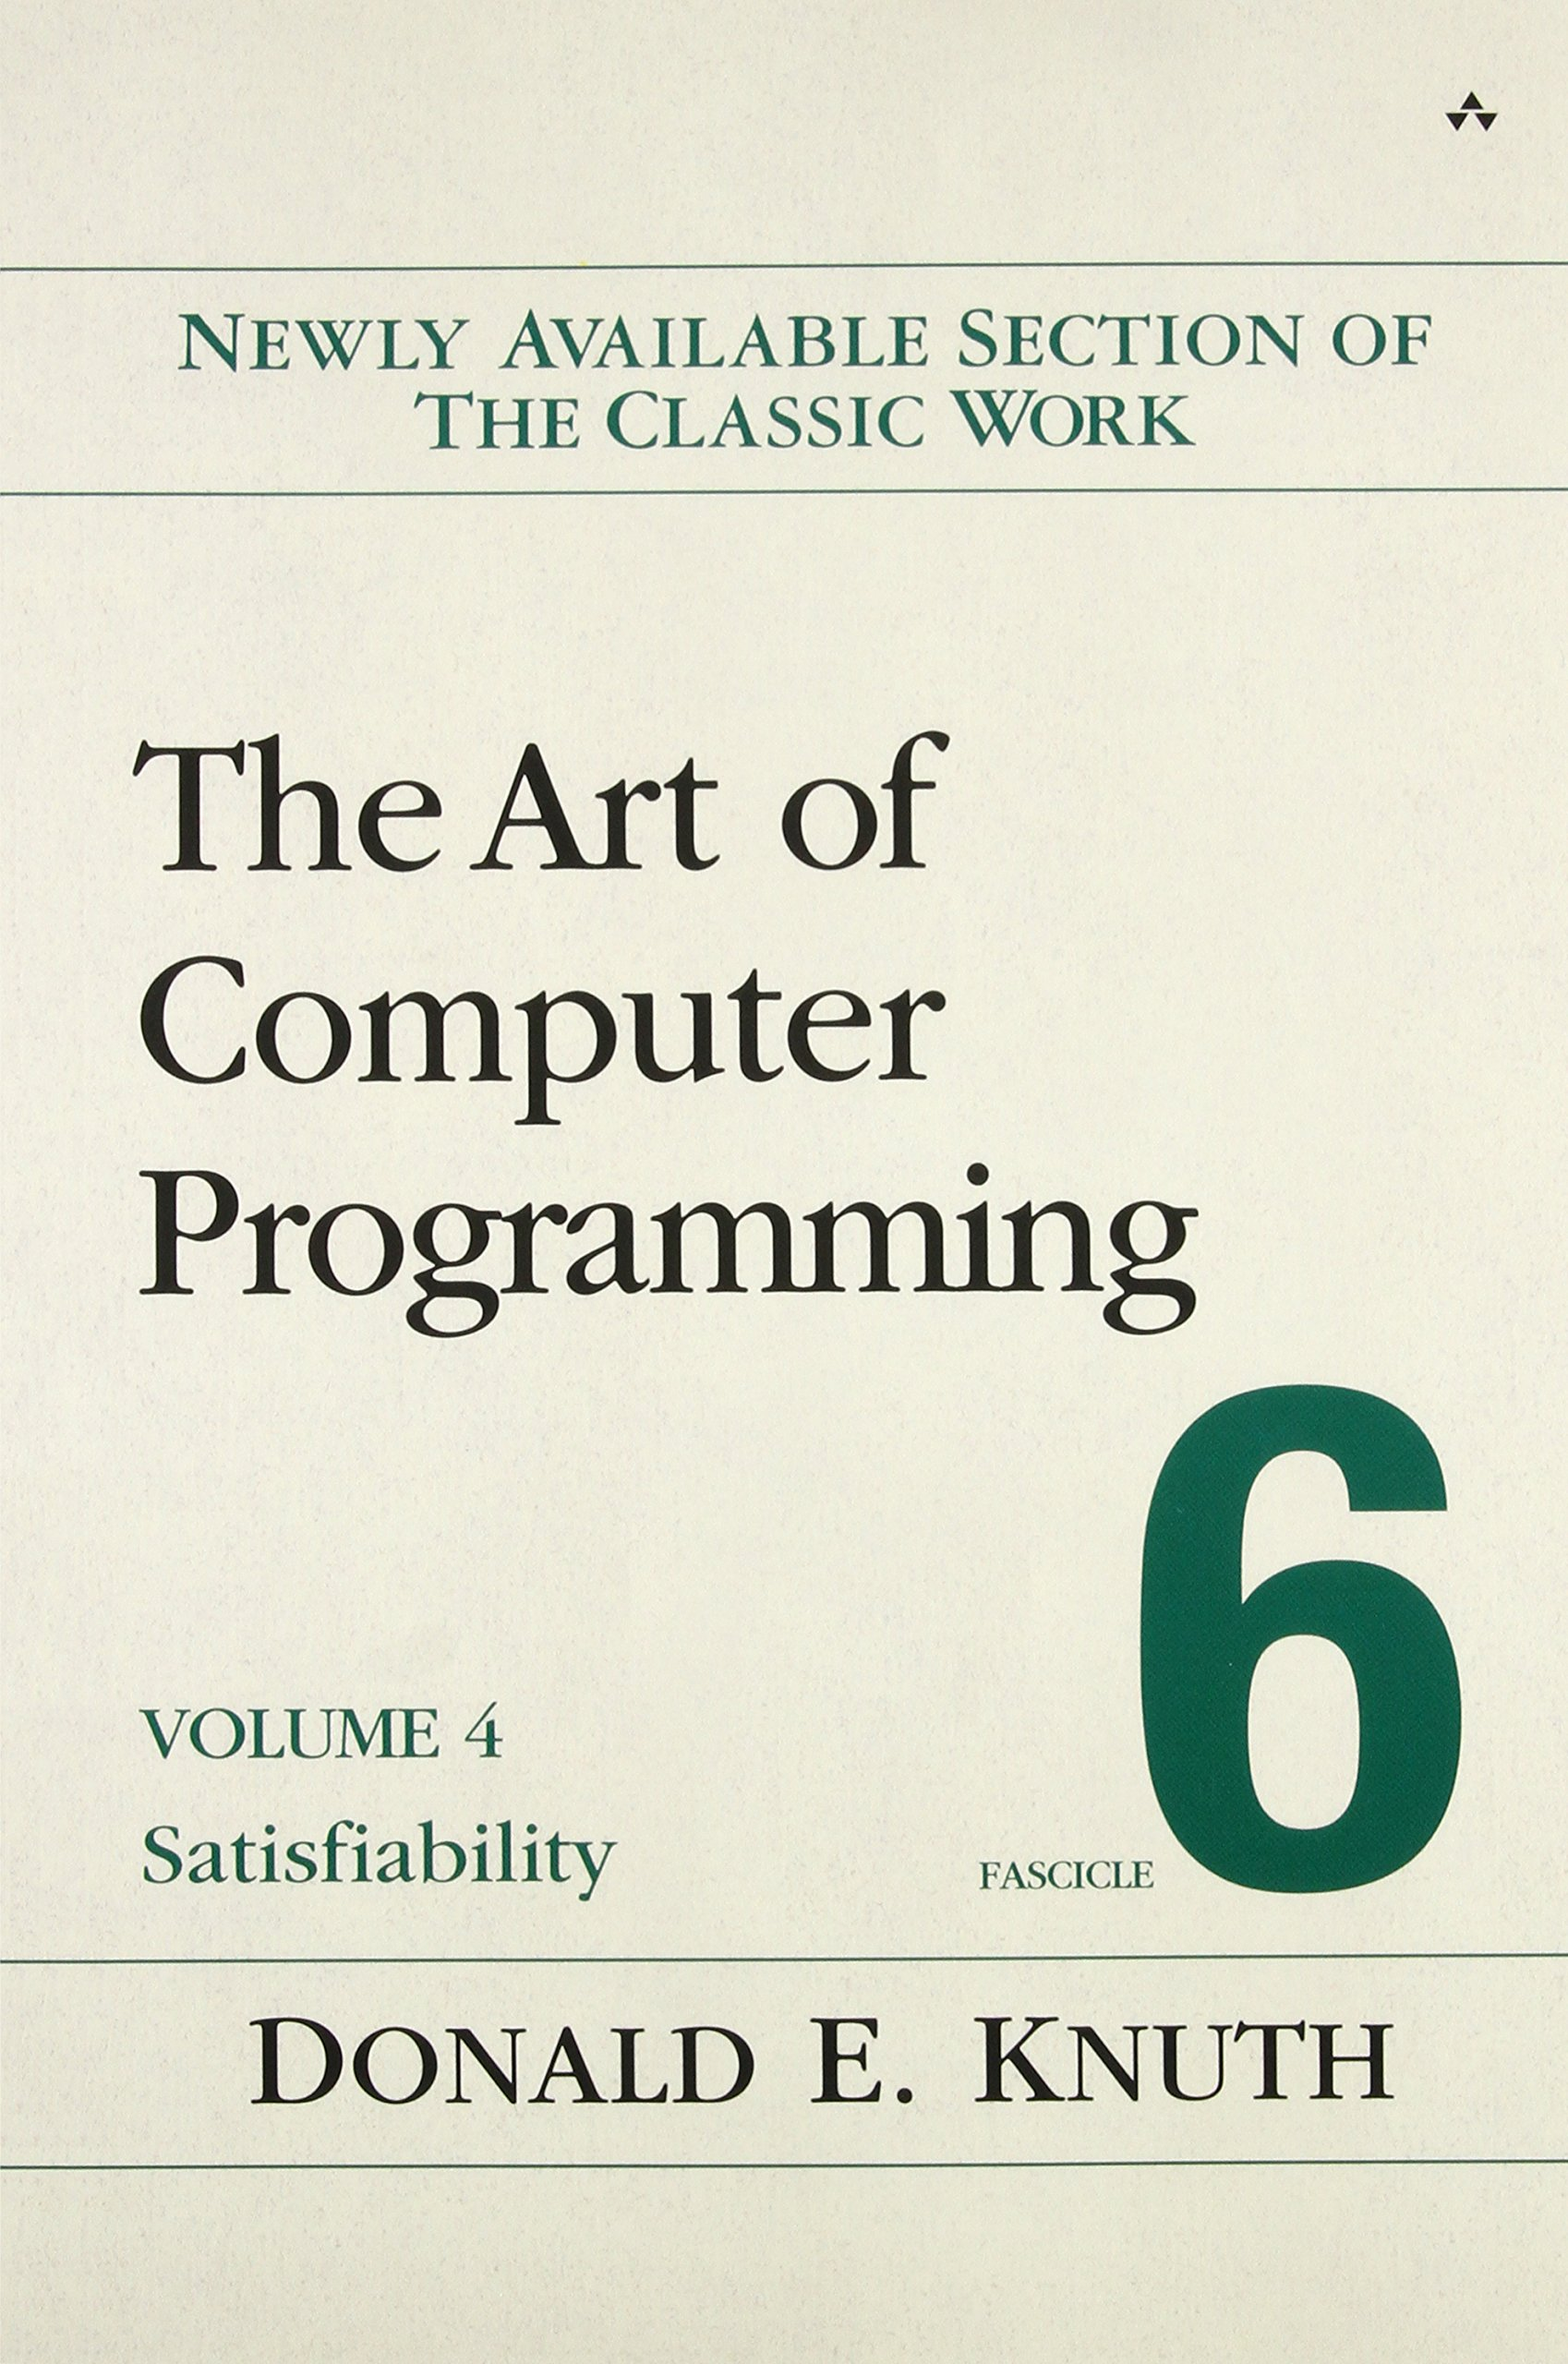 The Art of Computer Programming, Volume 4B, Fascicle 6: Satisfiability:  Amazon.de: Donald E. Knuth: Fremdsprachige Bücher